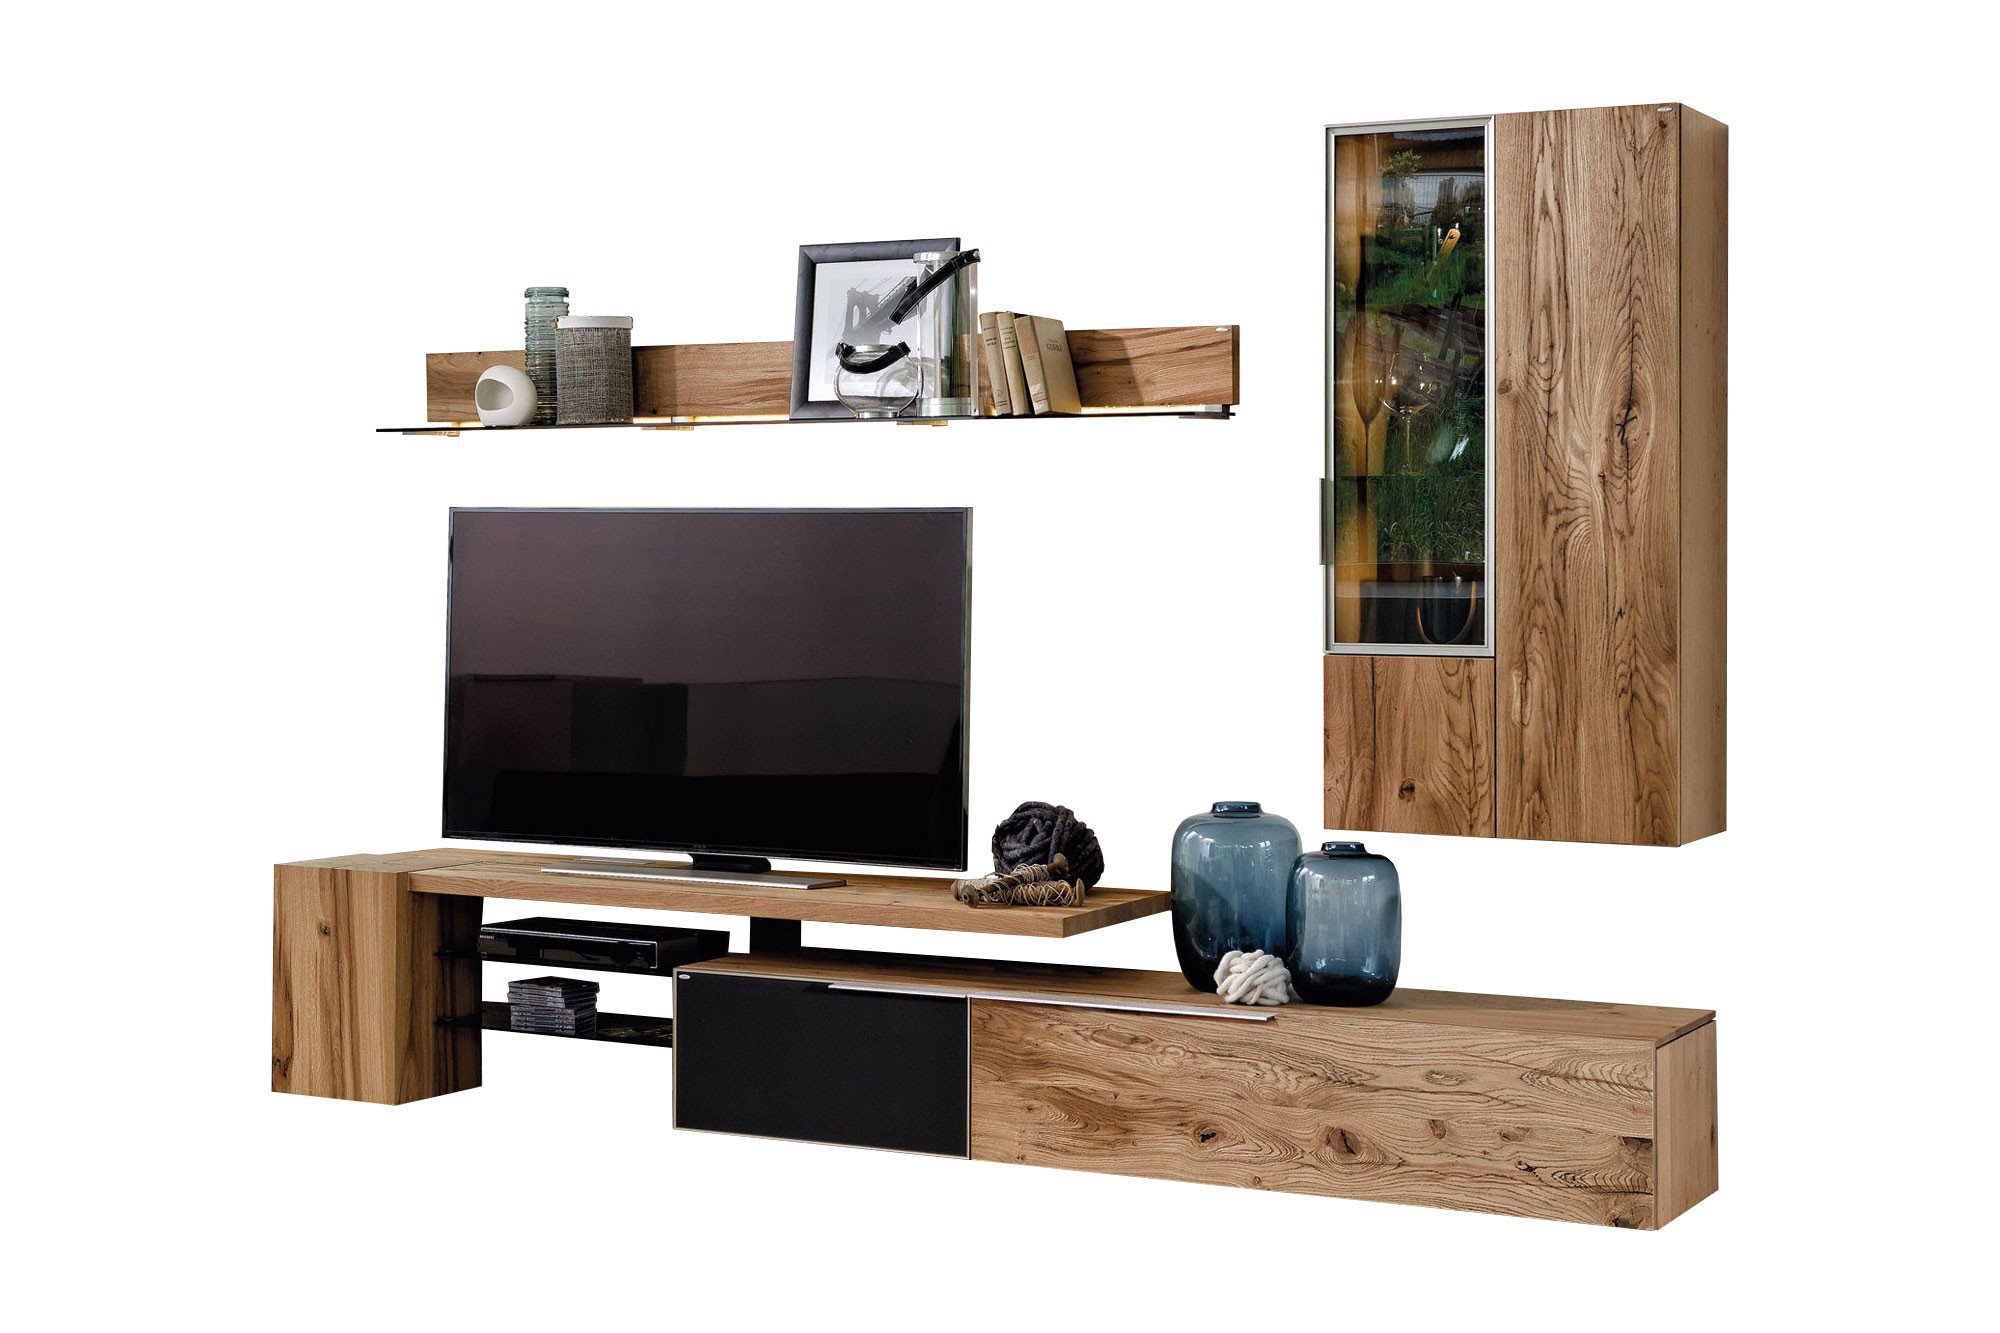 voglauer wohnwand v alpin 224 eiche colorglas m bel letz ihr online shop. Black Bedroom Furniture Sets. Home Design Ideas